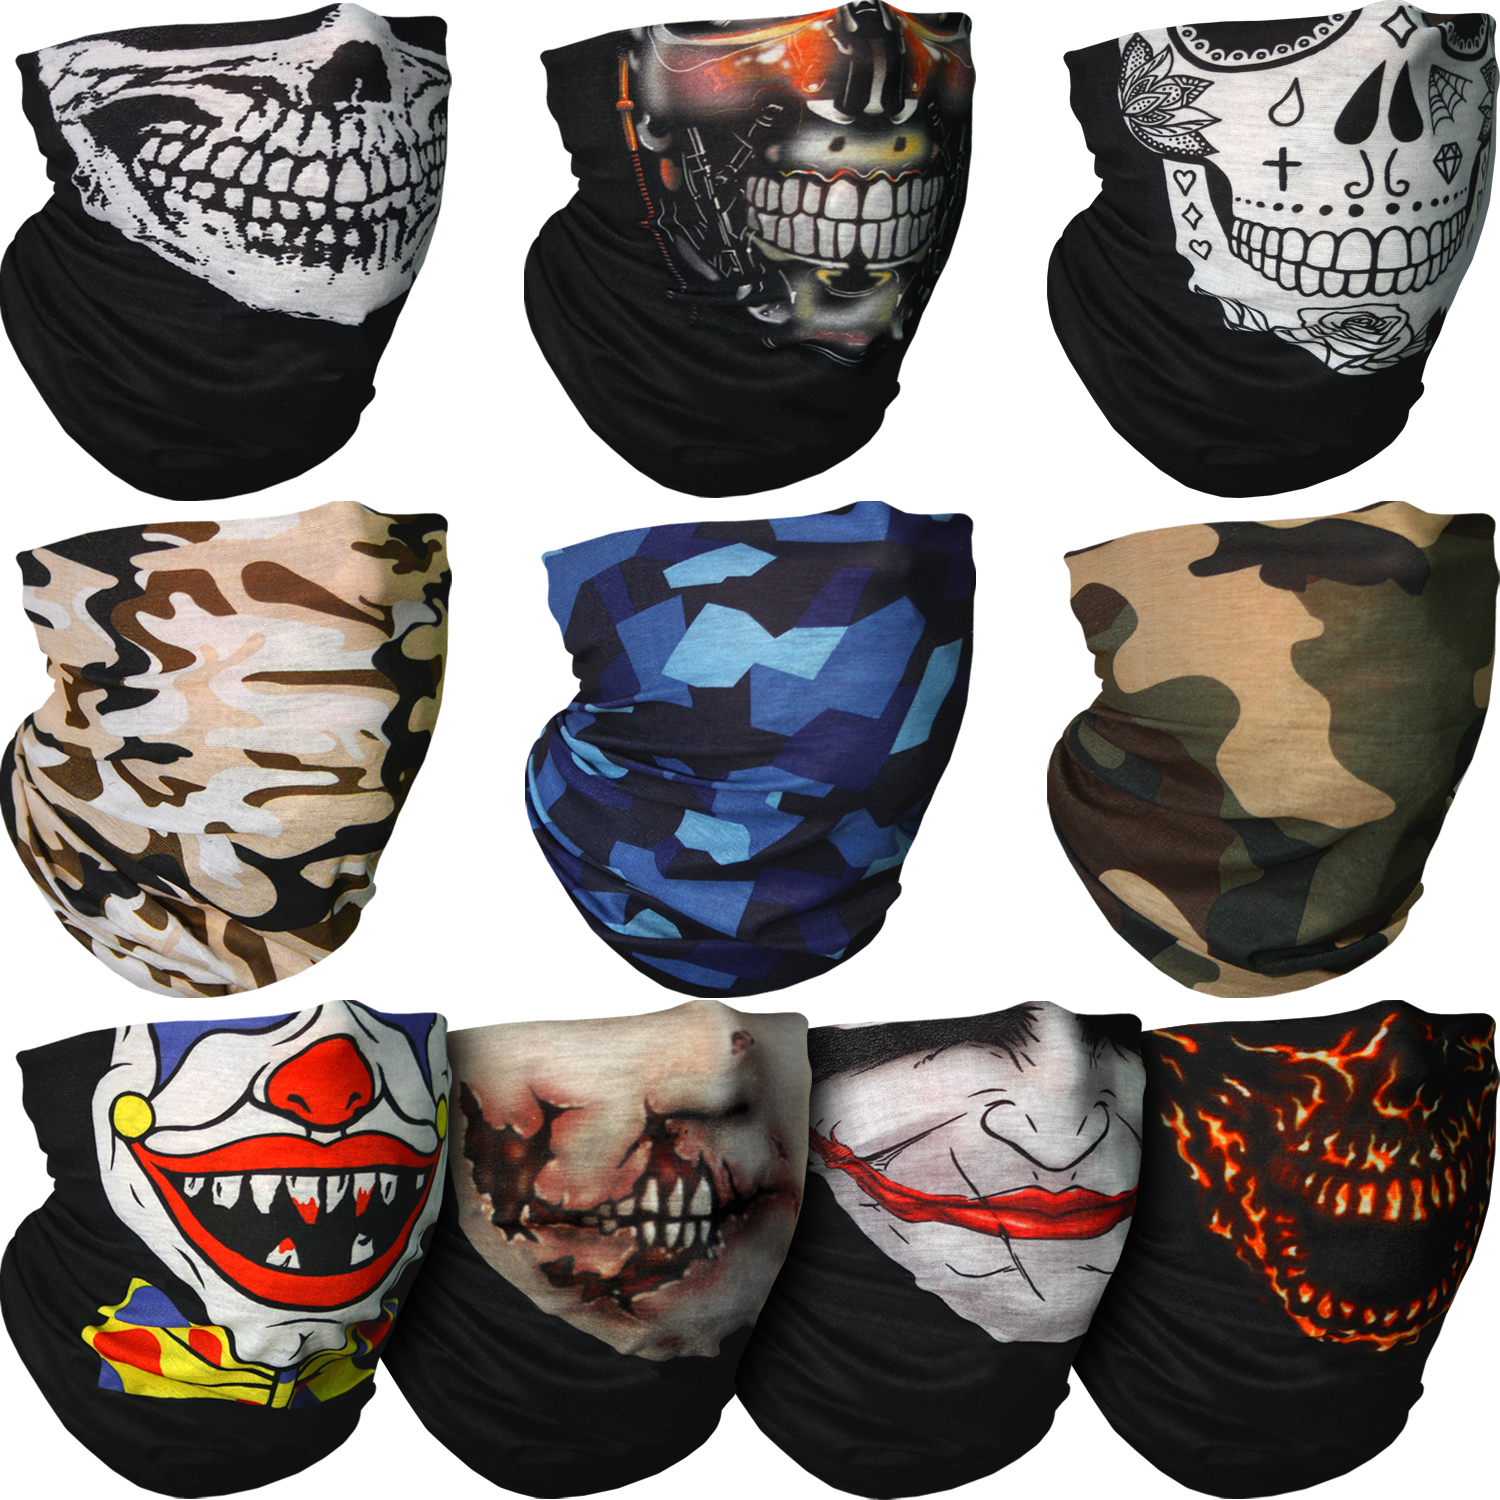 Hiking Cycling and other Outdoor Use Riding CampTeck Breathable Multi-Purpose Seamless Bandana Camo Skull Joker Clown Endoskeleton Zombie Print Tube Face Mask Balaclava Headband for Motorcycling